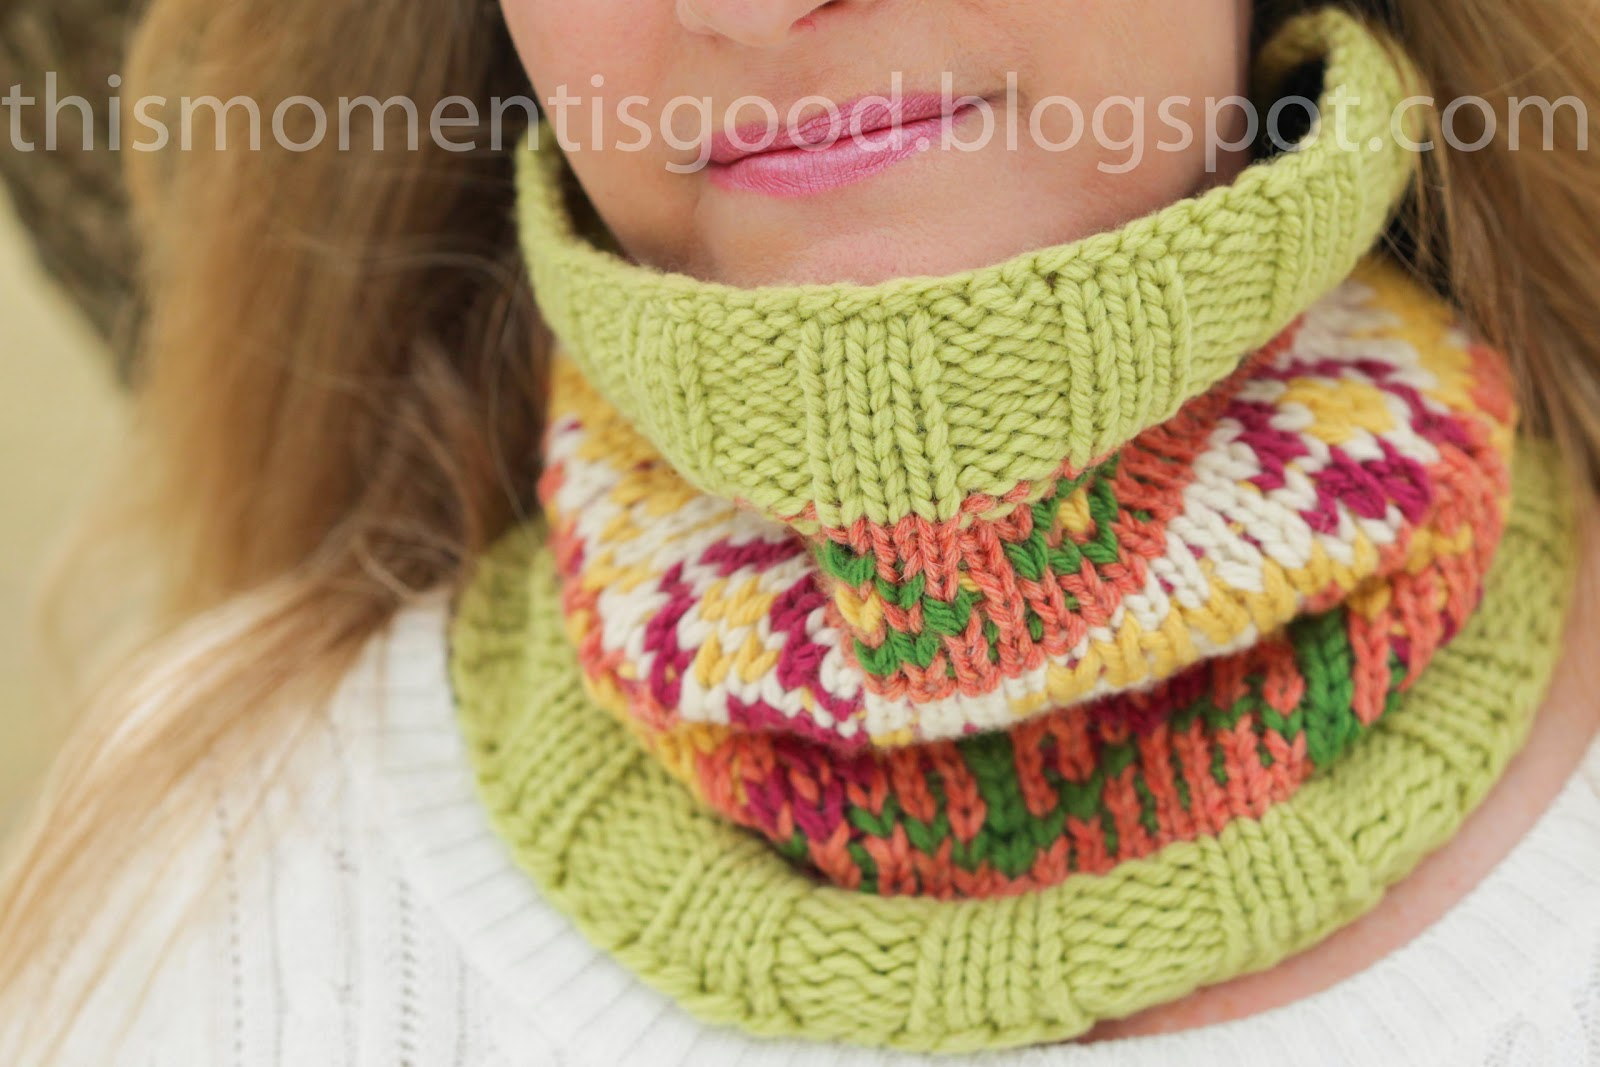 Loom Knitting Stitches Instructions : Loom Knitting by This Moment is Good!: LOOM KNIT FAIR ISLE COWL